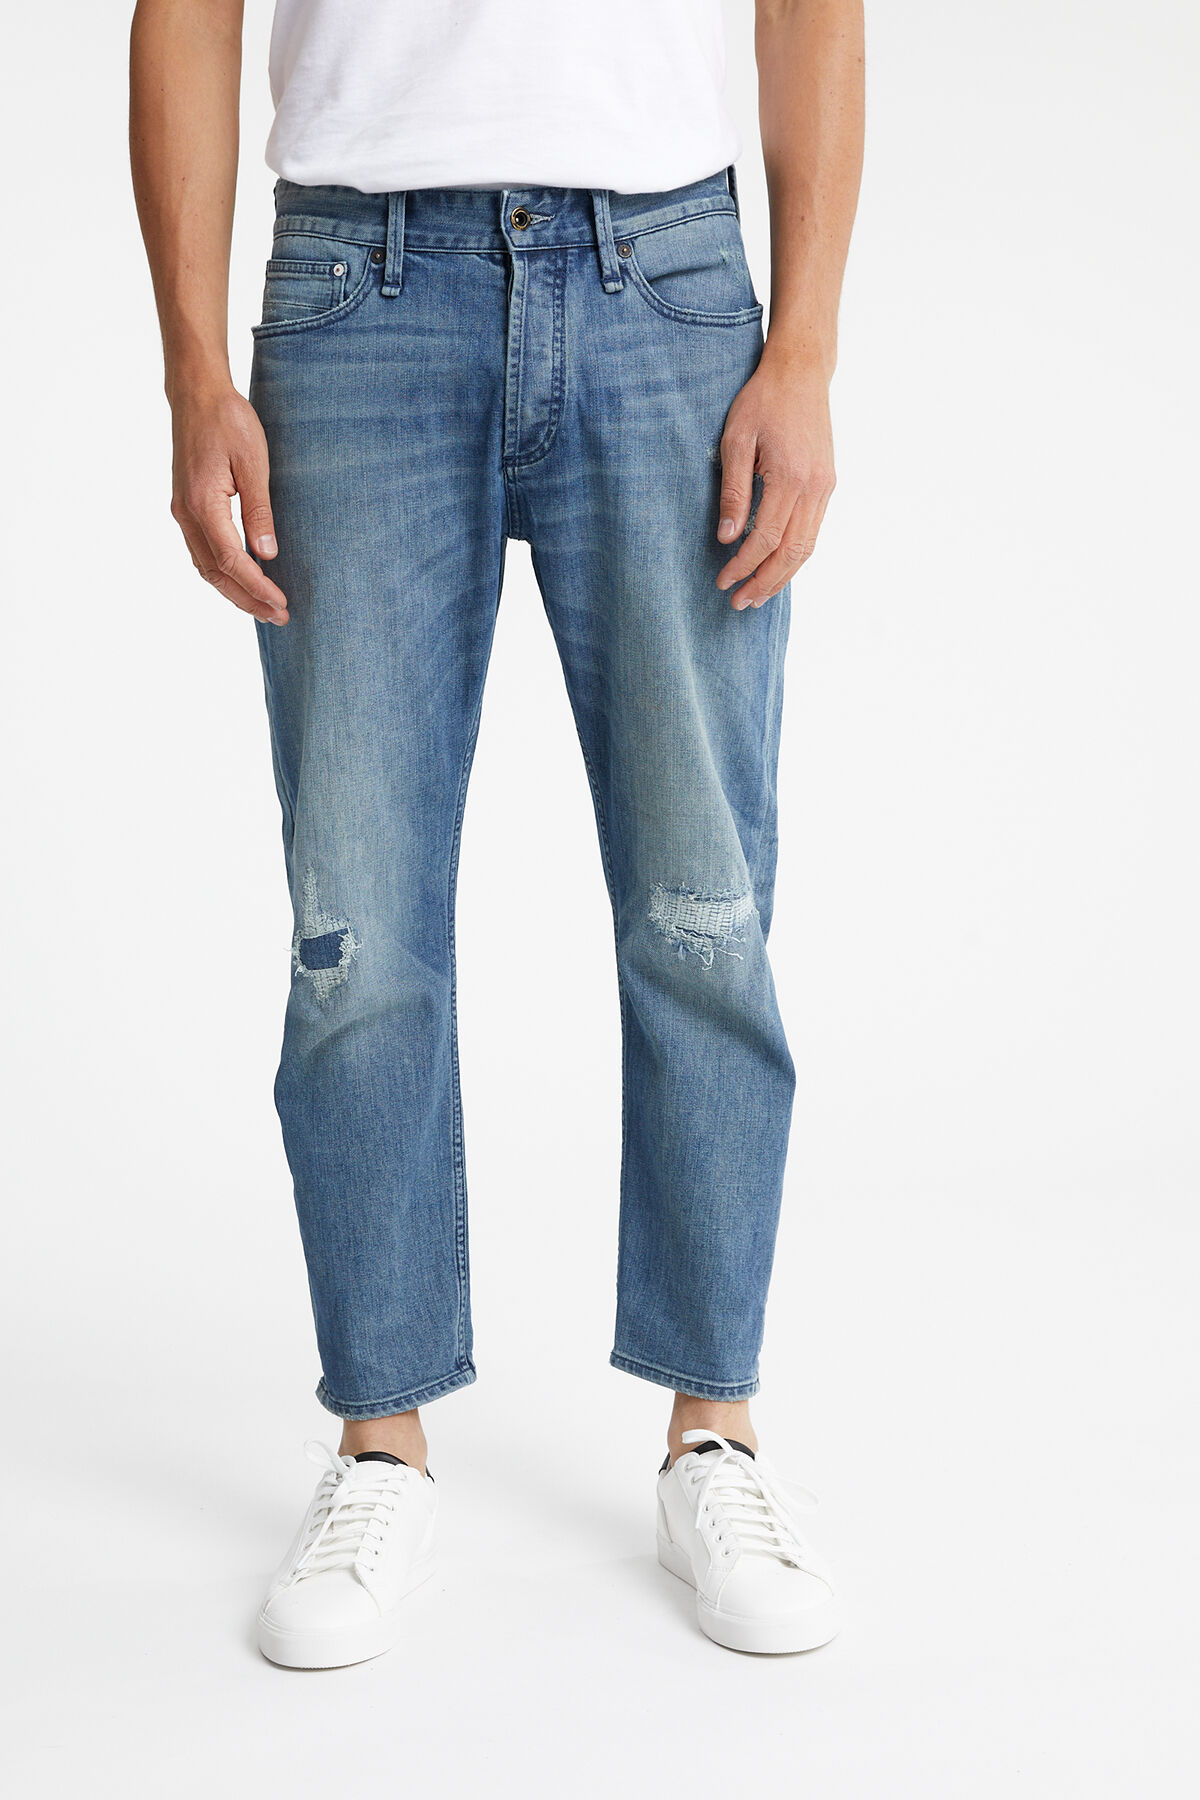 CROP Recycled, Rip & Repair Denim - LOW CROTCH, CROPPED FIT